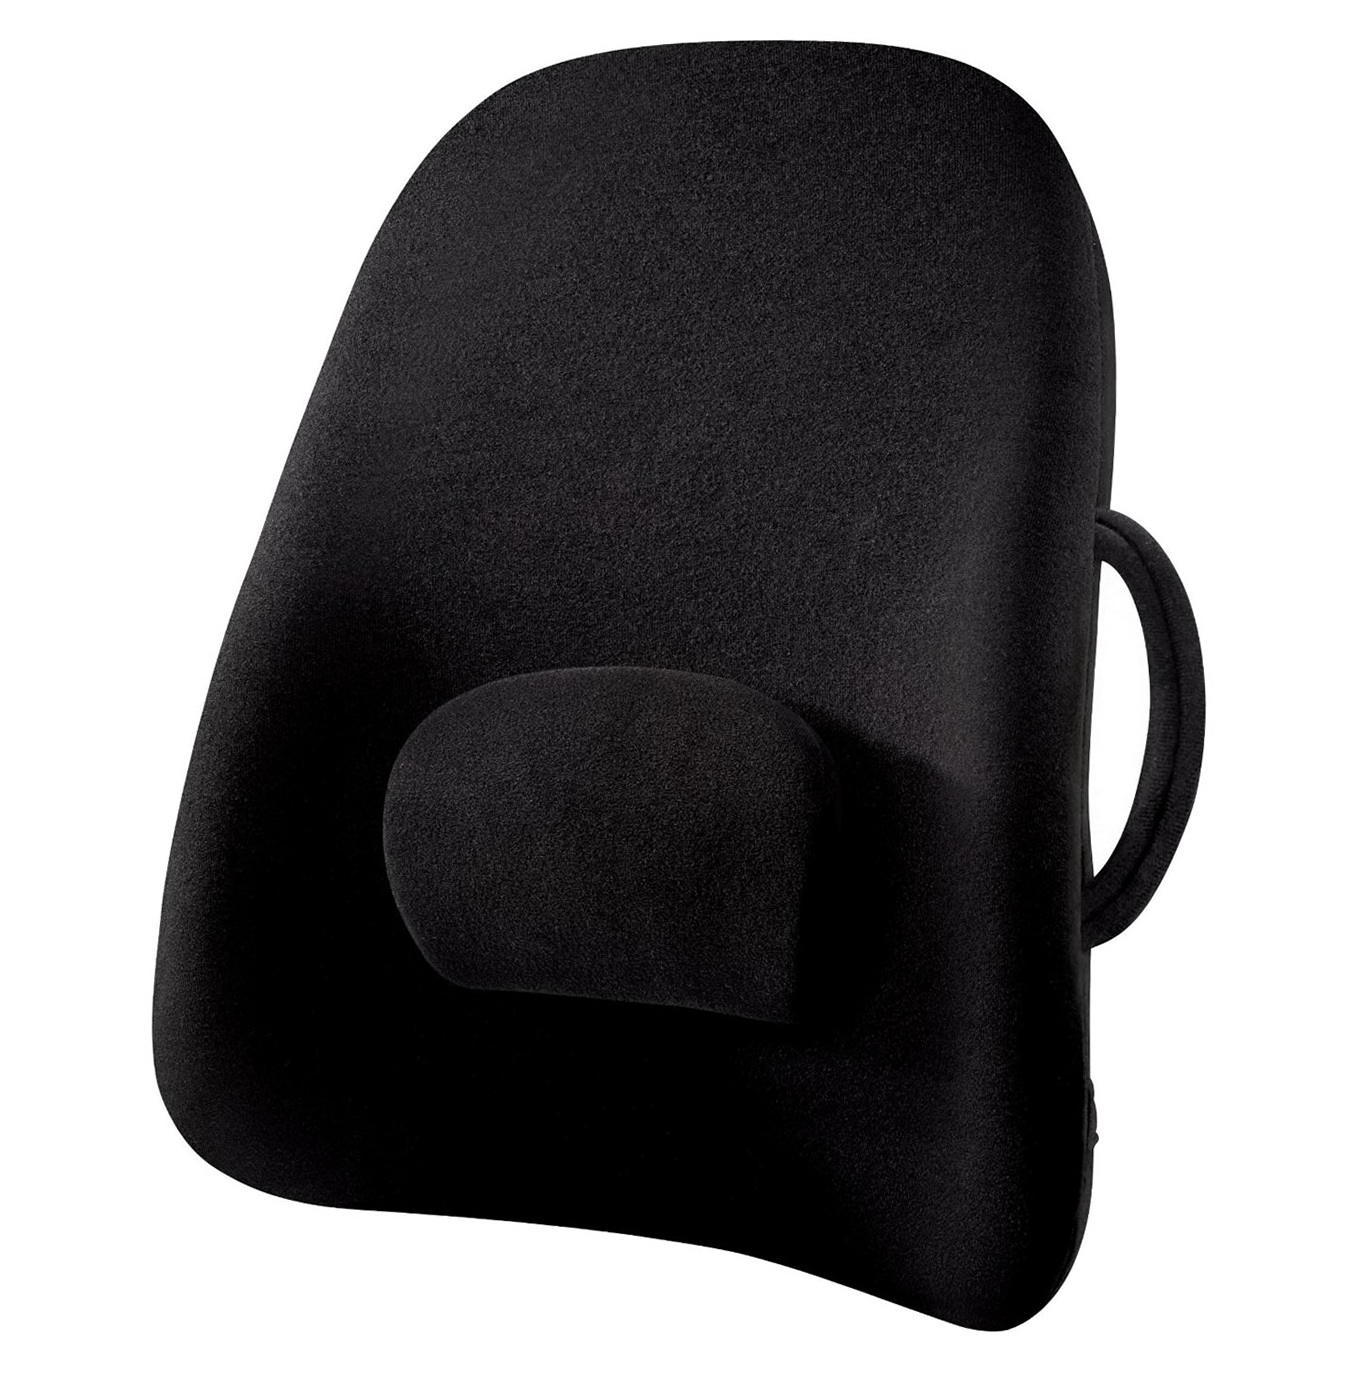 Cushion For Car Seat For Short People